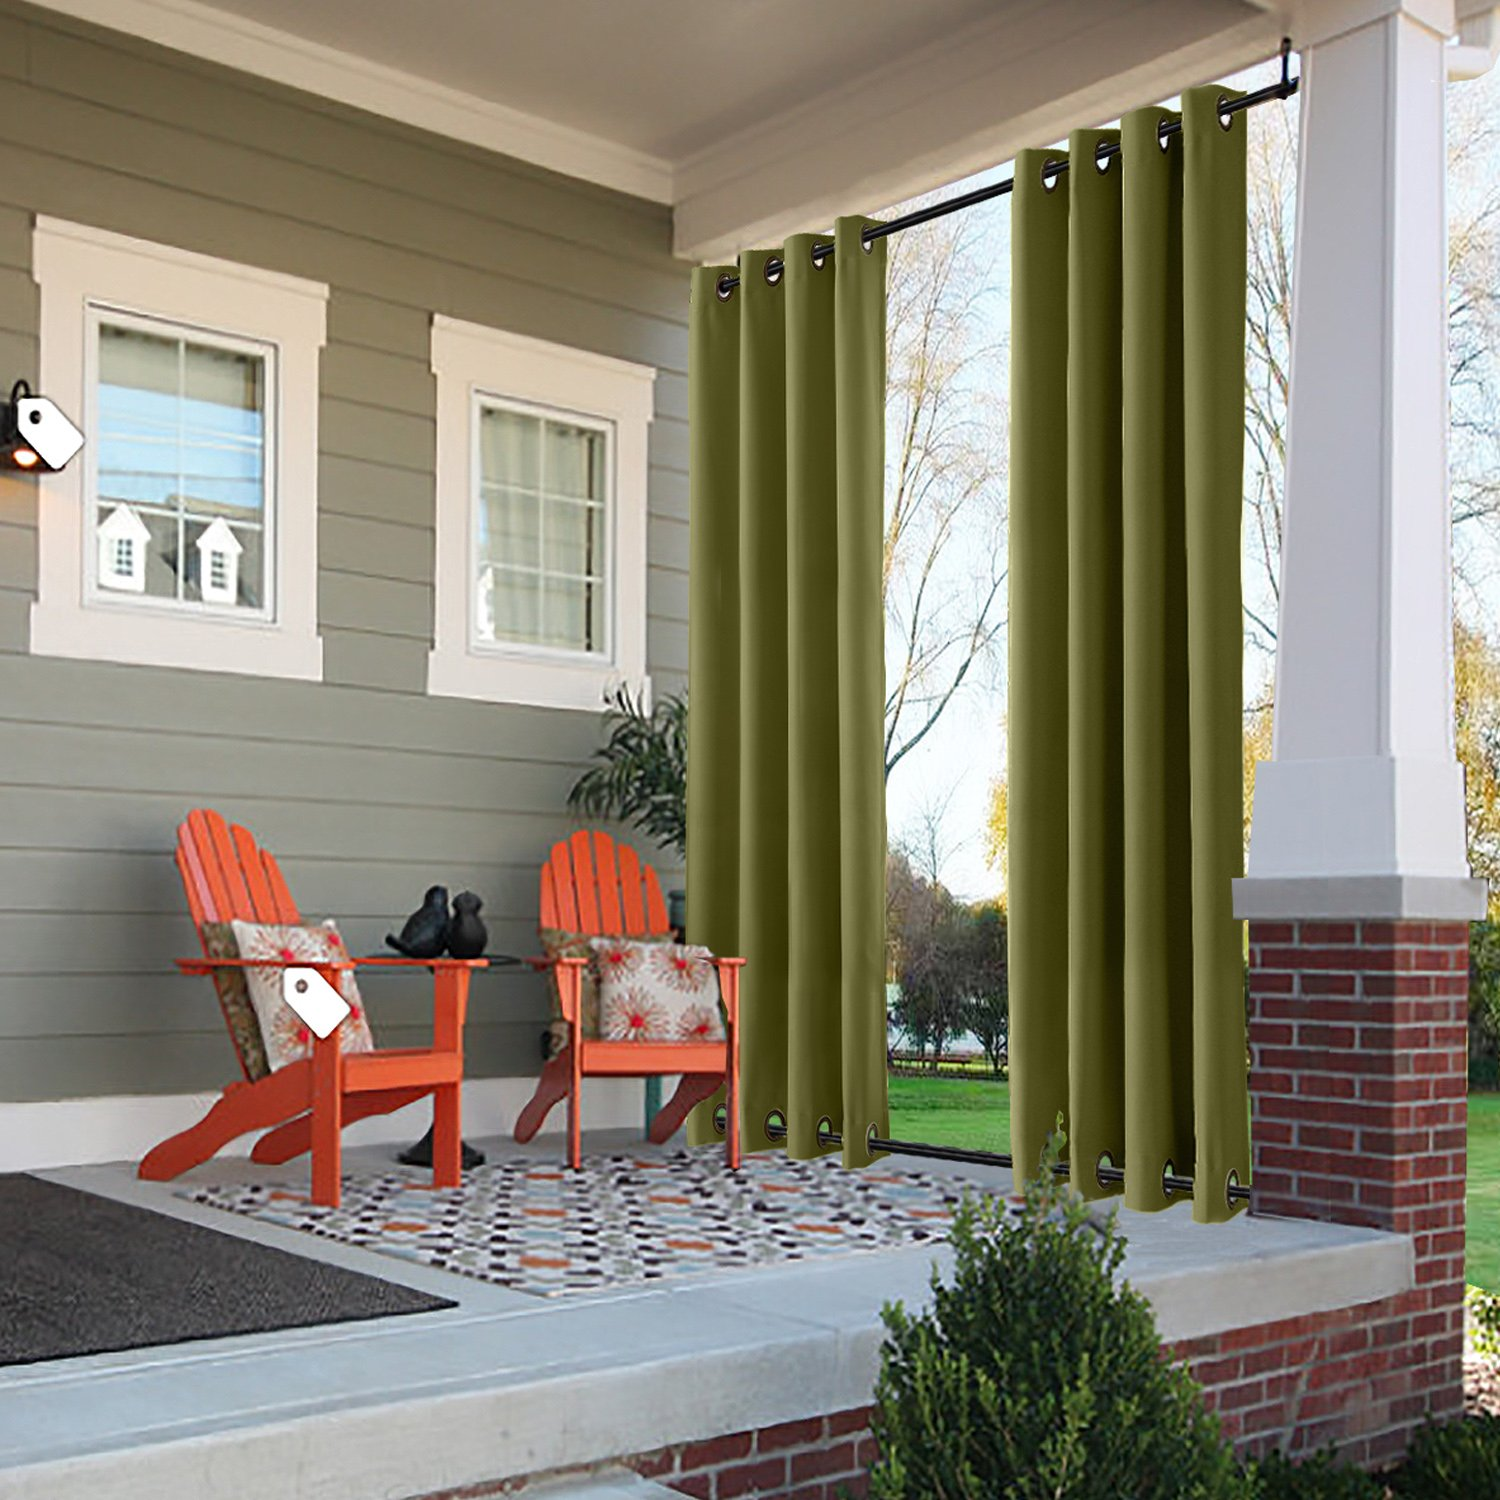 ChadMade Windproof Outdoor Curtain with Top Bottom Grommet Olive 100'' W x 96'' L, Waterproof Patio Cabana Porch Gazebo Panel Drapery (1 Panel)